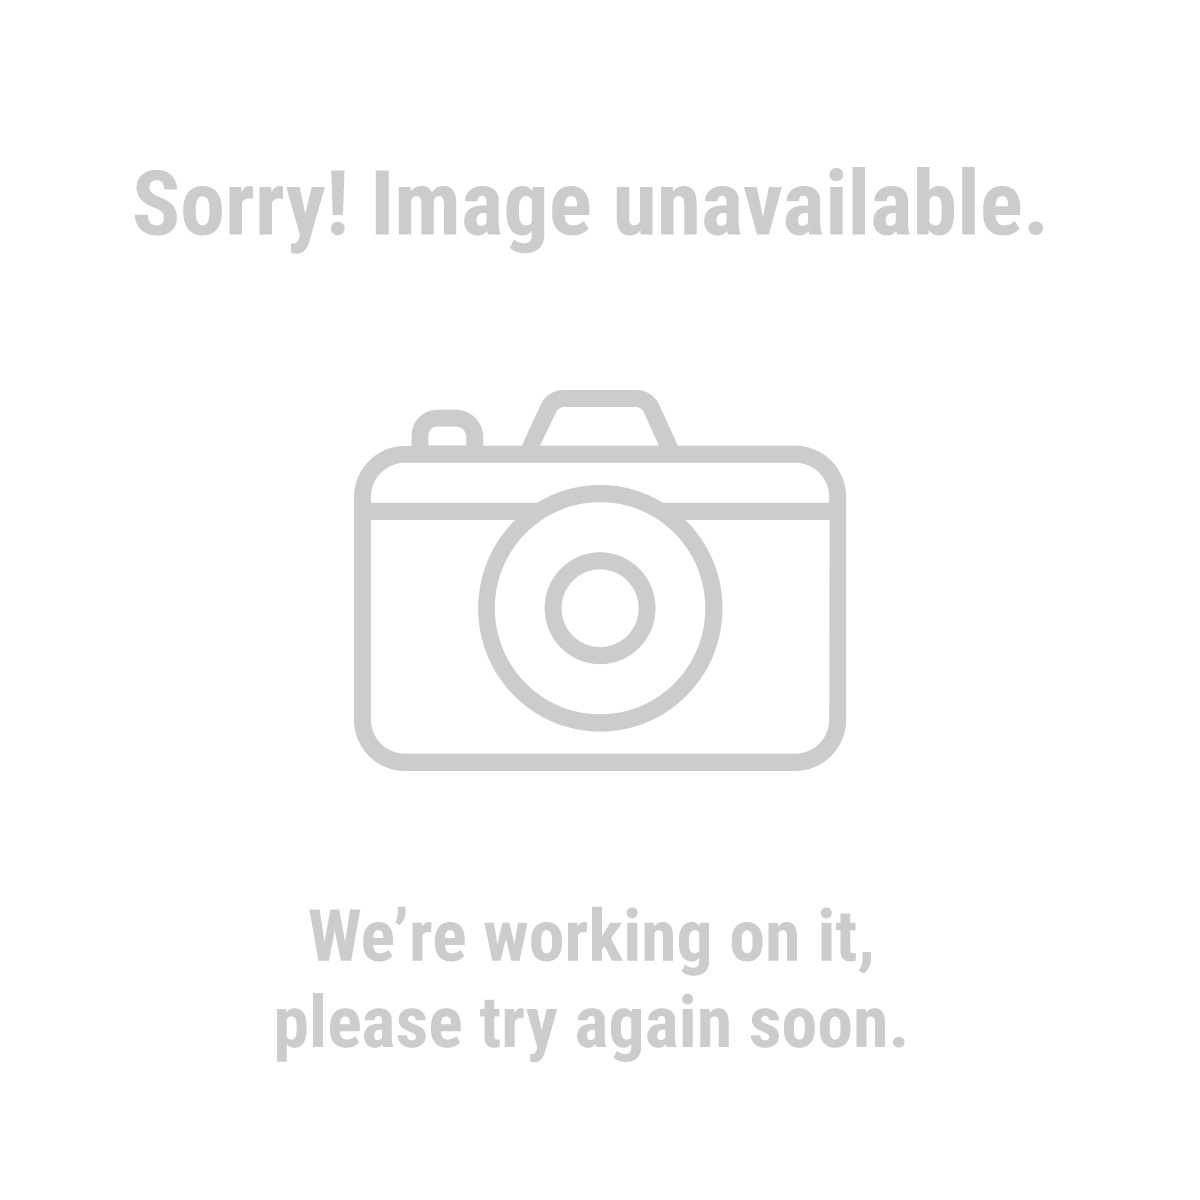 HFT 68347 Industrial Strength Super Glue